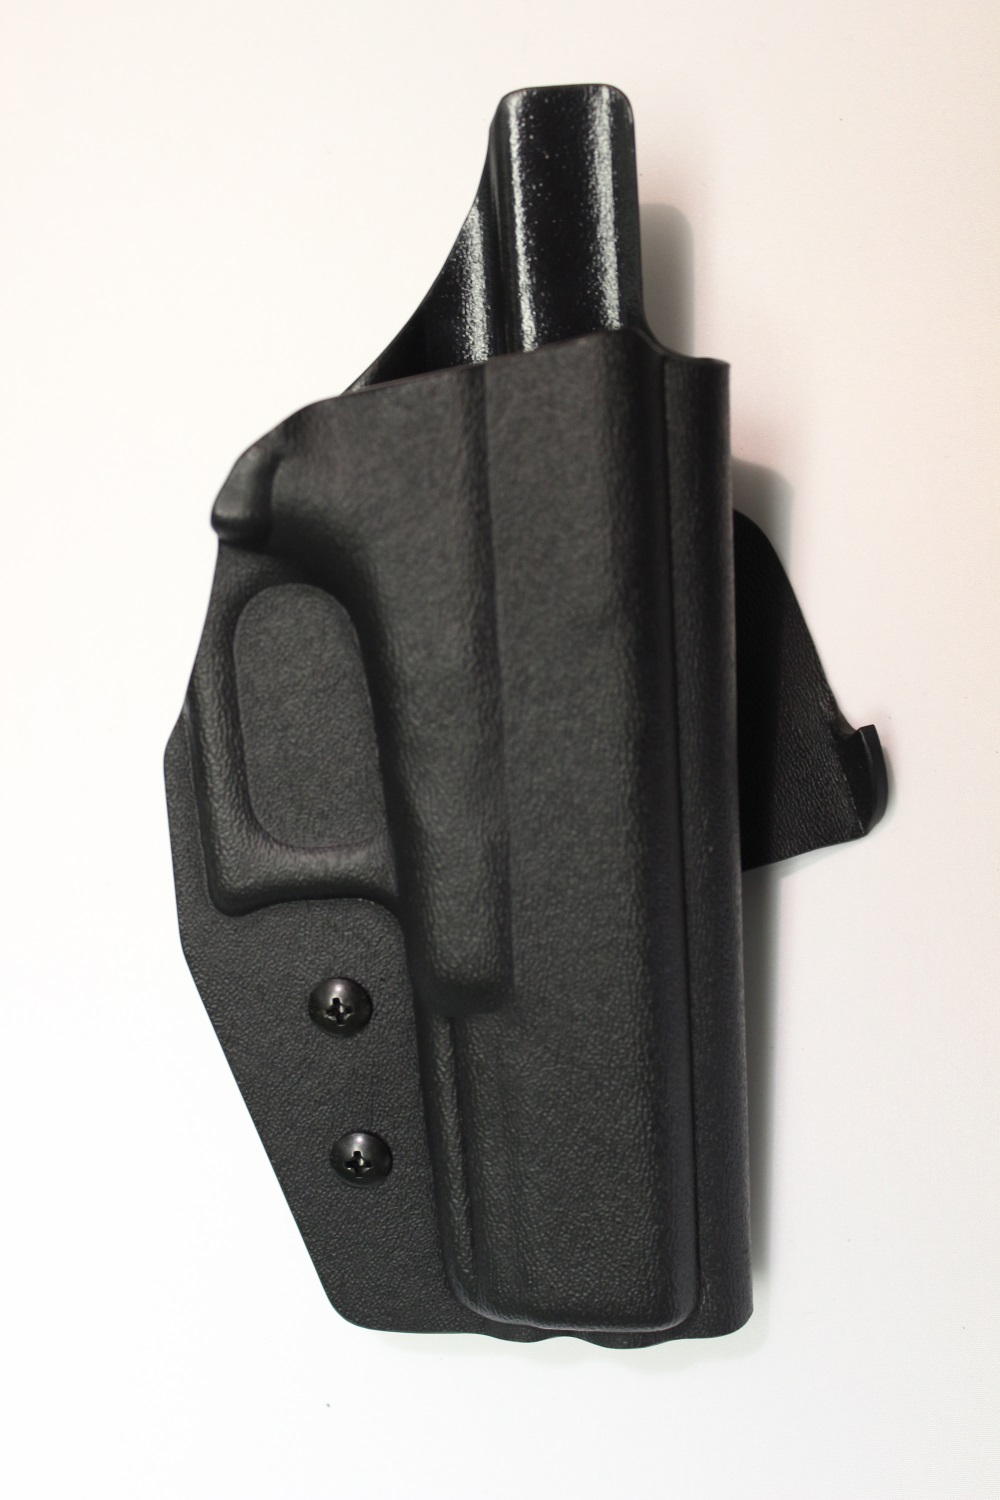 elite quick ship owb paddle holster � multiholsters